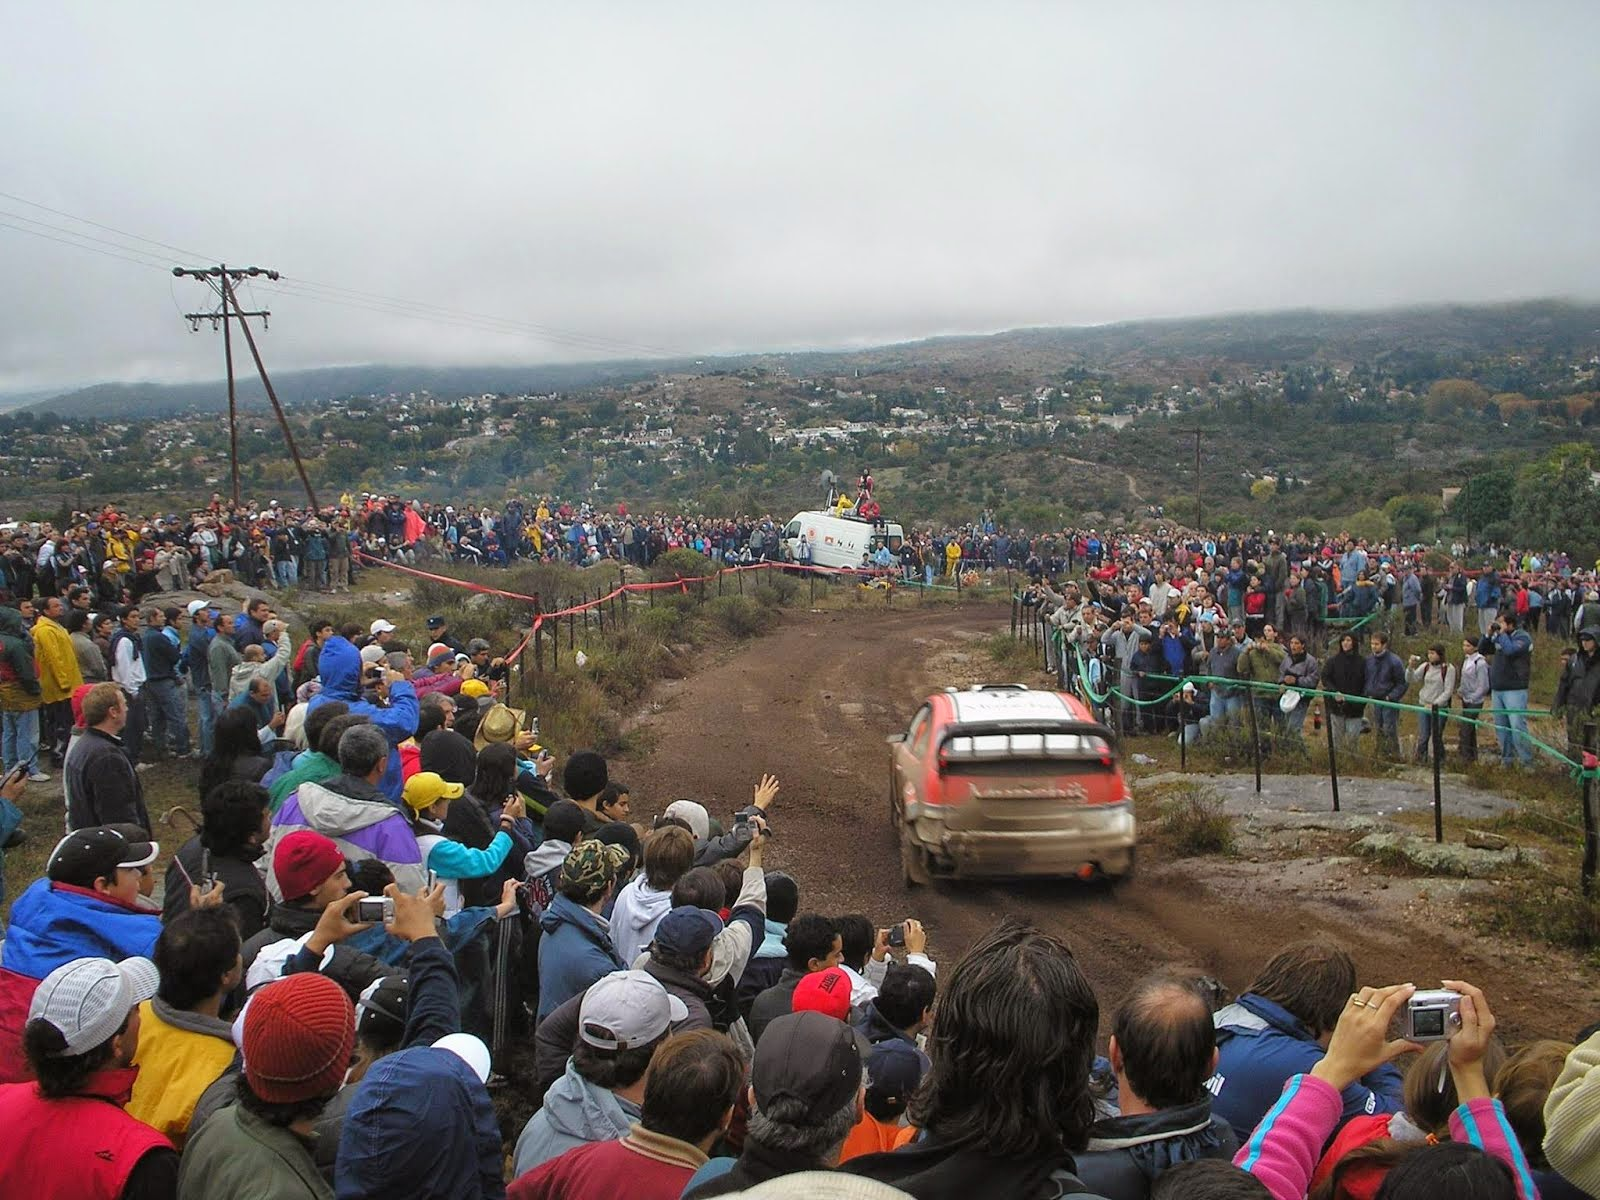 REGRESA EL RALLY MUNDIAL A TANTI